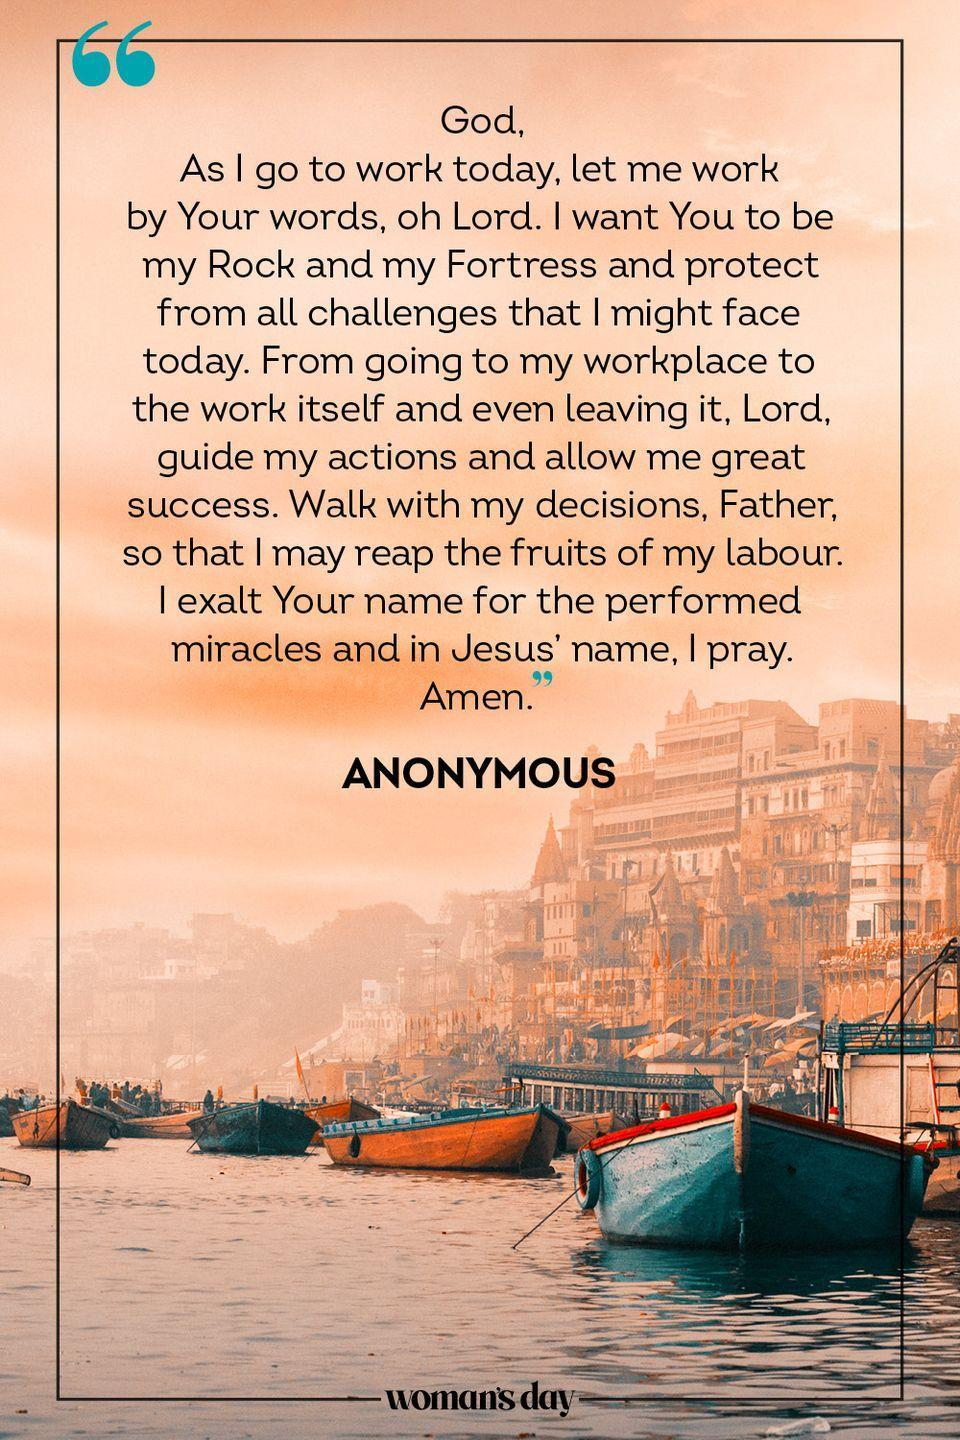 """<p>God, </p><p>As I go to work today, let me work by Your words, oh Lord. I want You to be my Rock and my Fortress and protect from all challenges that I might face today. From going to my workplace to the work itself and even leaving it, Lord, guide my actions and allow me great success. Walk with my decisions, Father, so that I may reap the fruits of my labour. I exalt Your name for the performed miracles and in Jesus' name, I pray.</p><p>Amen.</p><p>— <a href=""""https://www.holylandprayer.com/prayer_for/powerful-prayers-for-today/"""" rel=""""nofollow noopener"""" target=""""_blank"""" data-ylk=""""slk:Anonymous"""" class=""""link rapid-noclick-resp"""">Anonymous</a> </p>"""